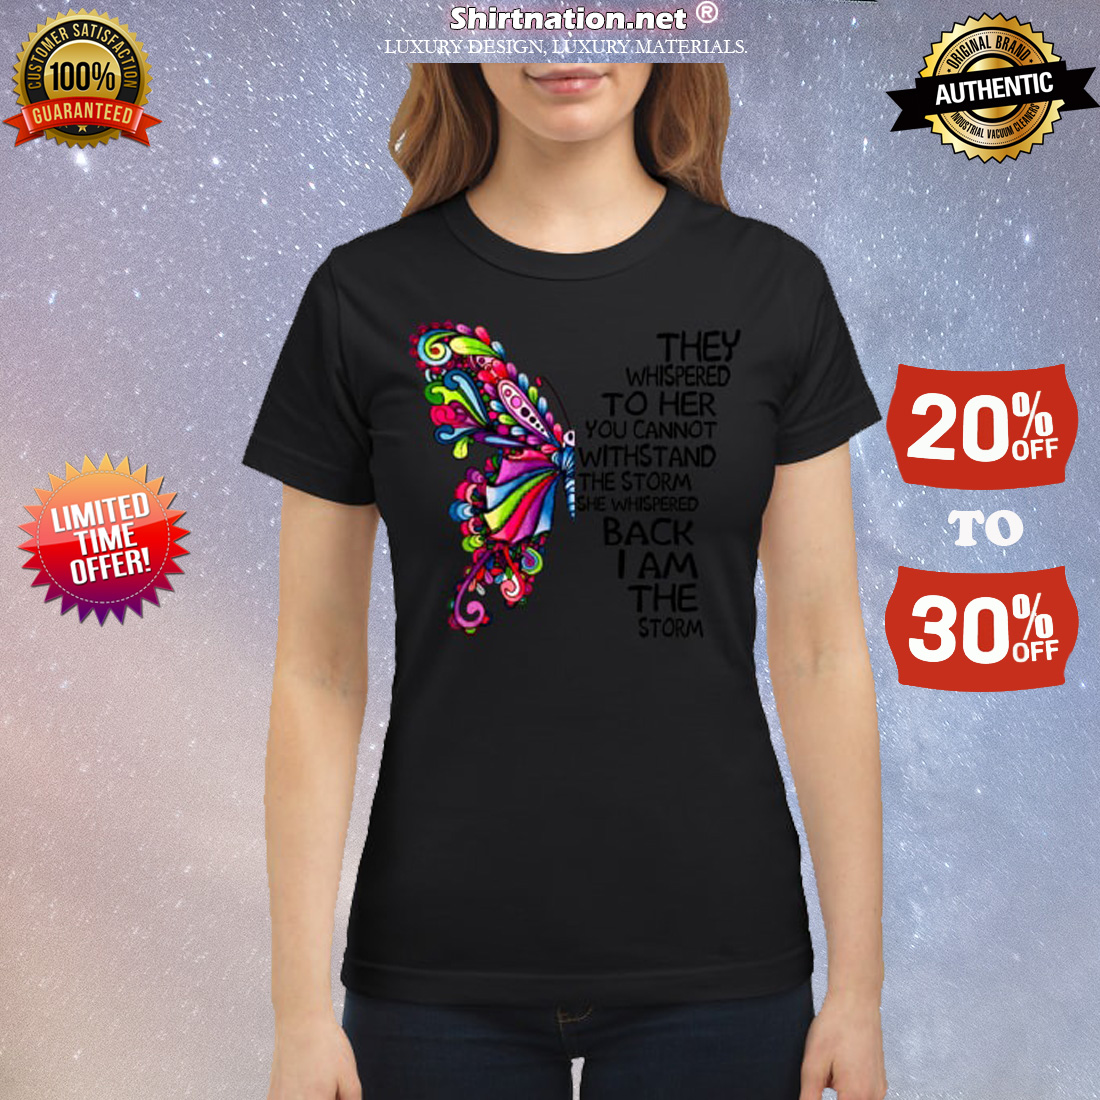 They wishpered to her you cannot withstand the storm she whispered back I am the storm classic shirt